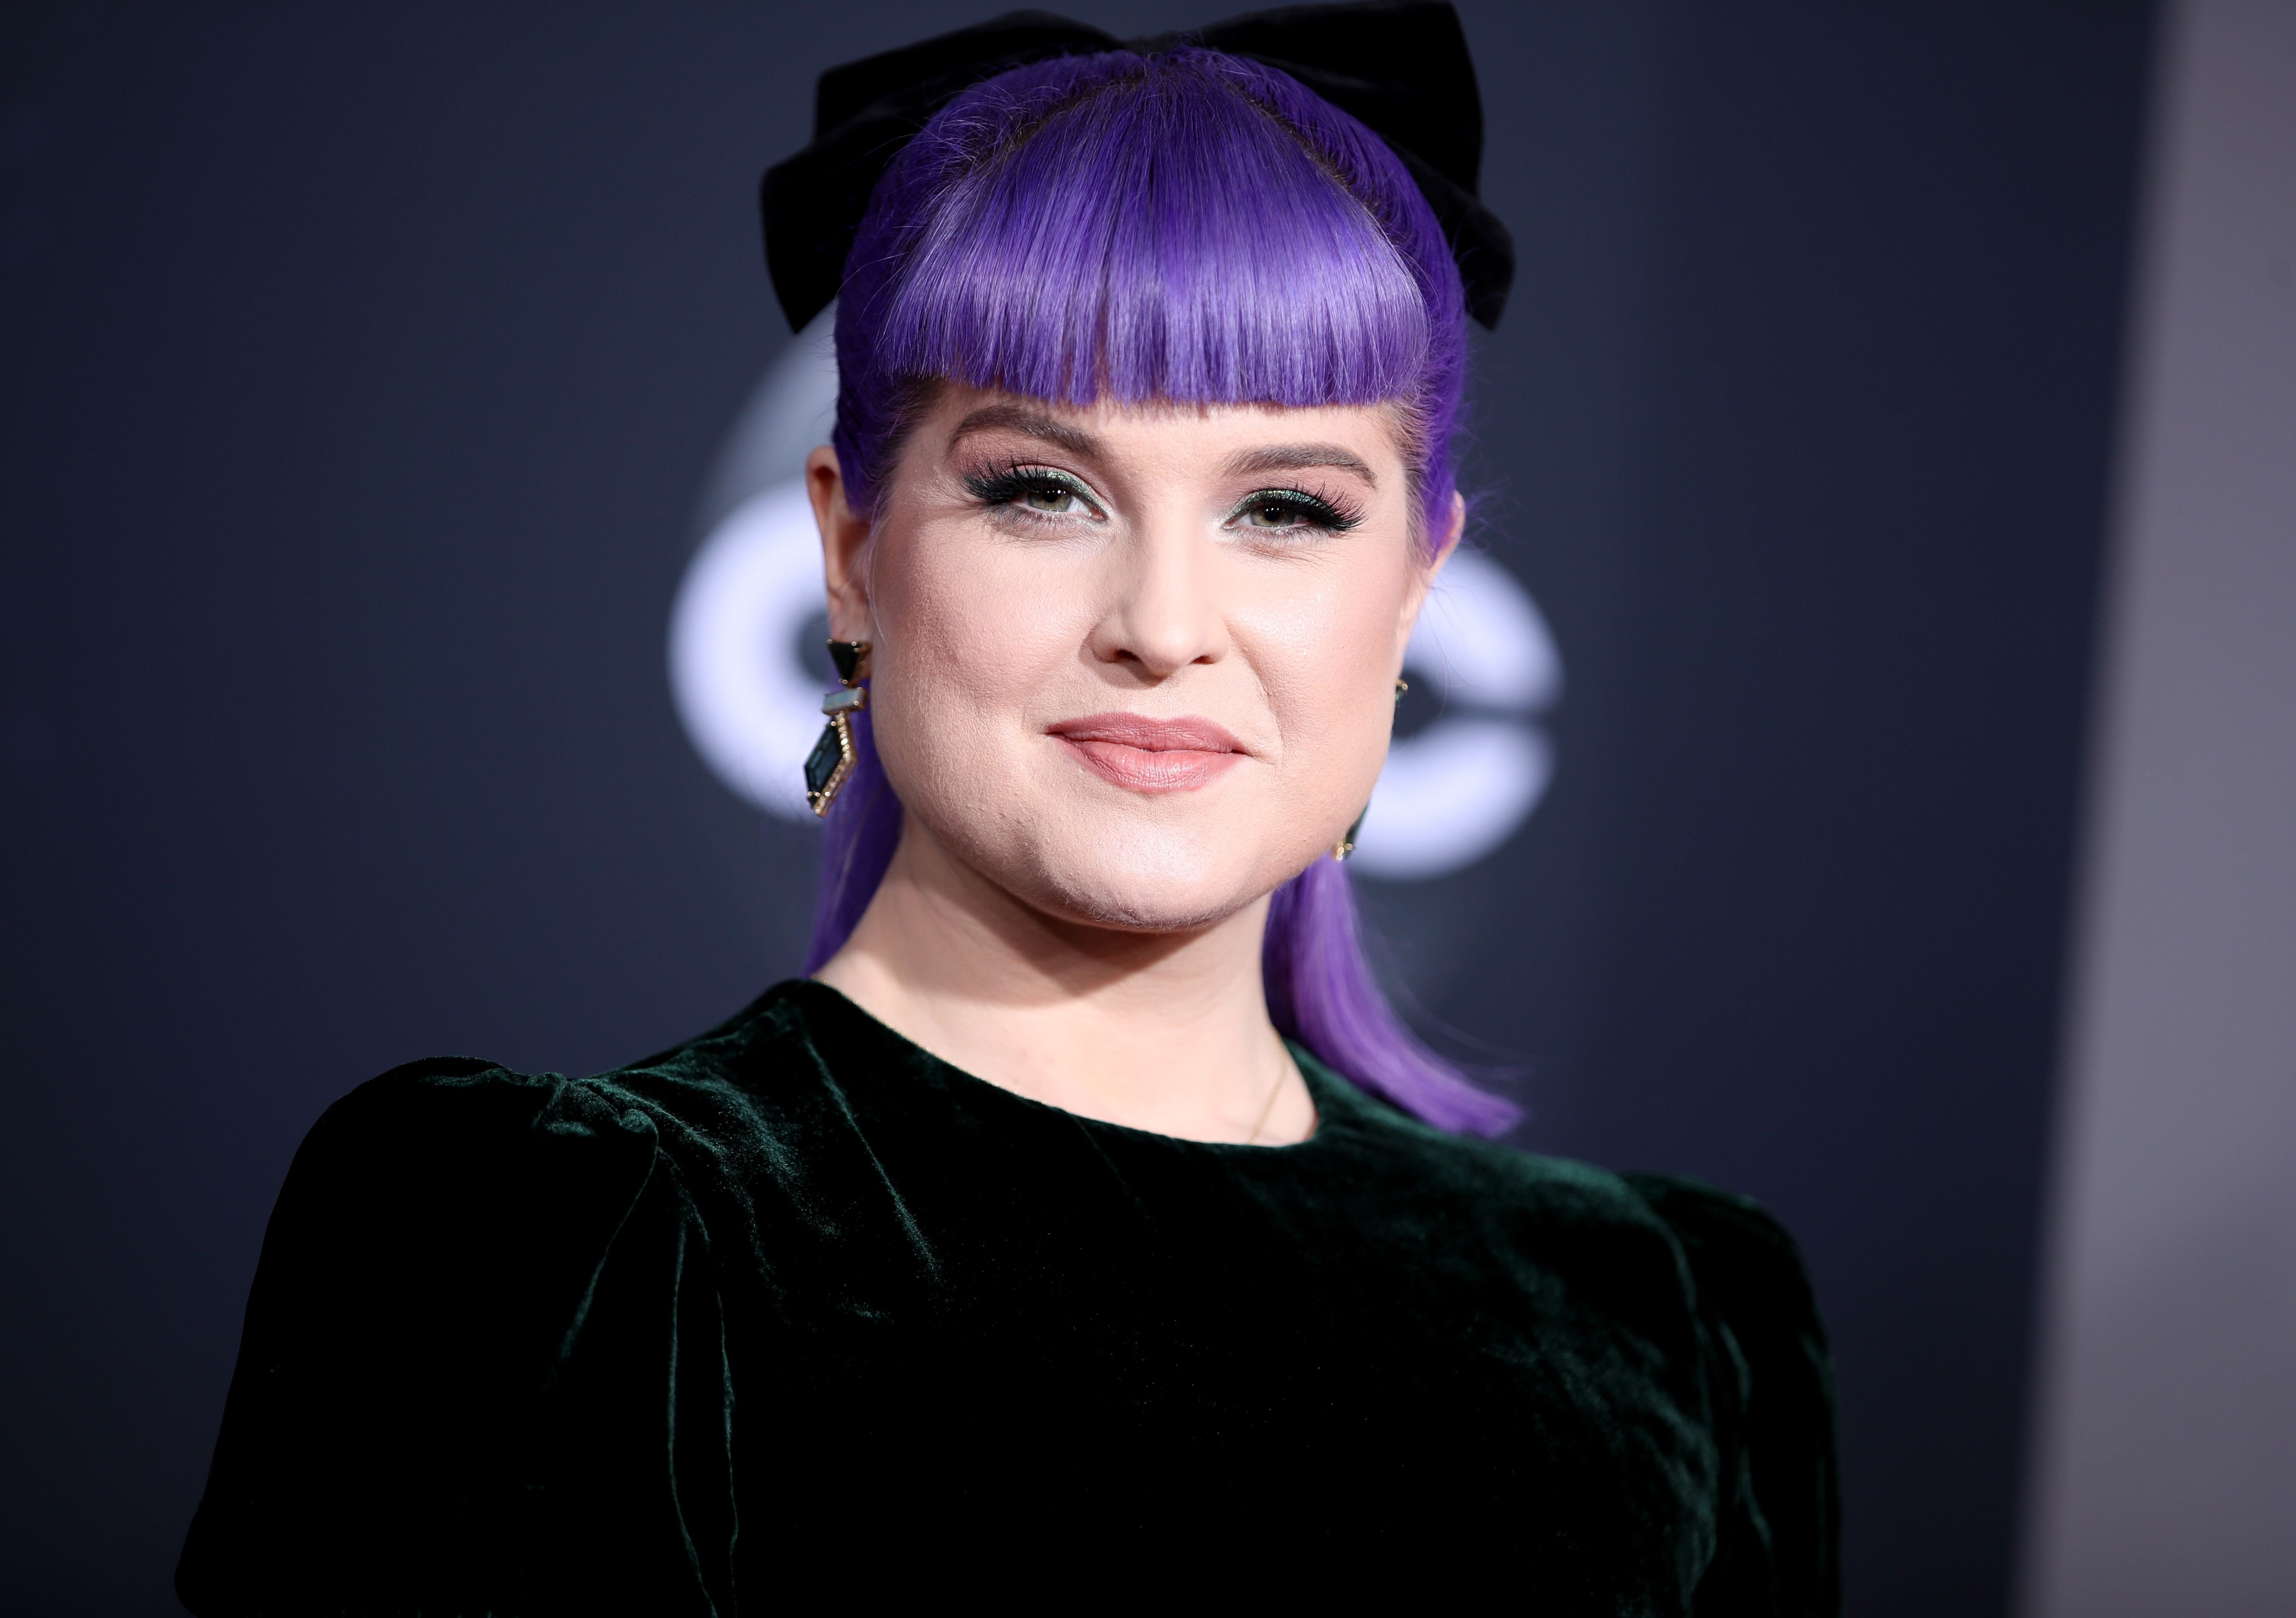 Kelly Osbourne at the 2019 American Music Awards at Microsoft Theater on November 24, 2019 | Photo: Getty Images